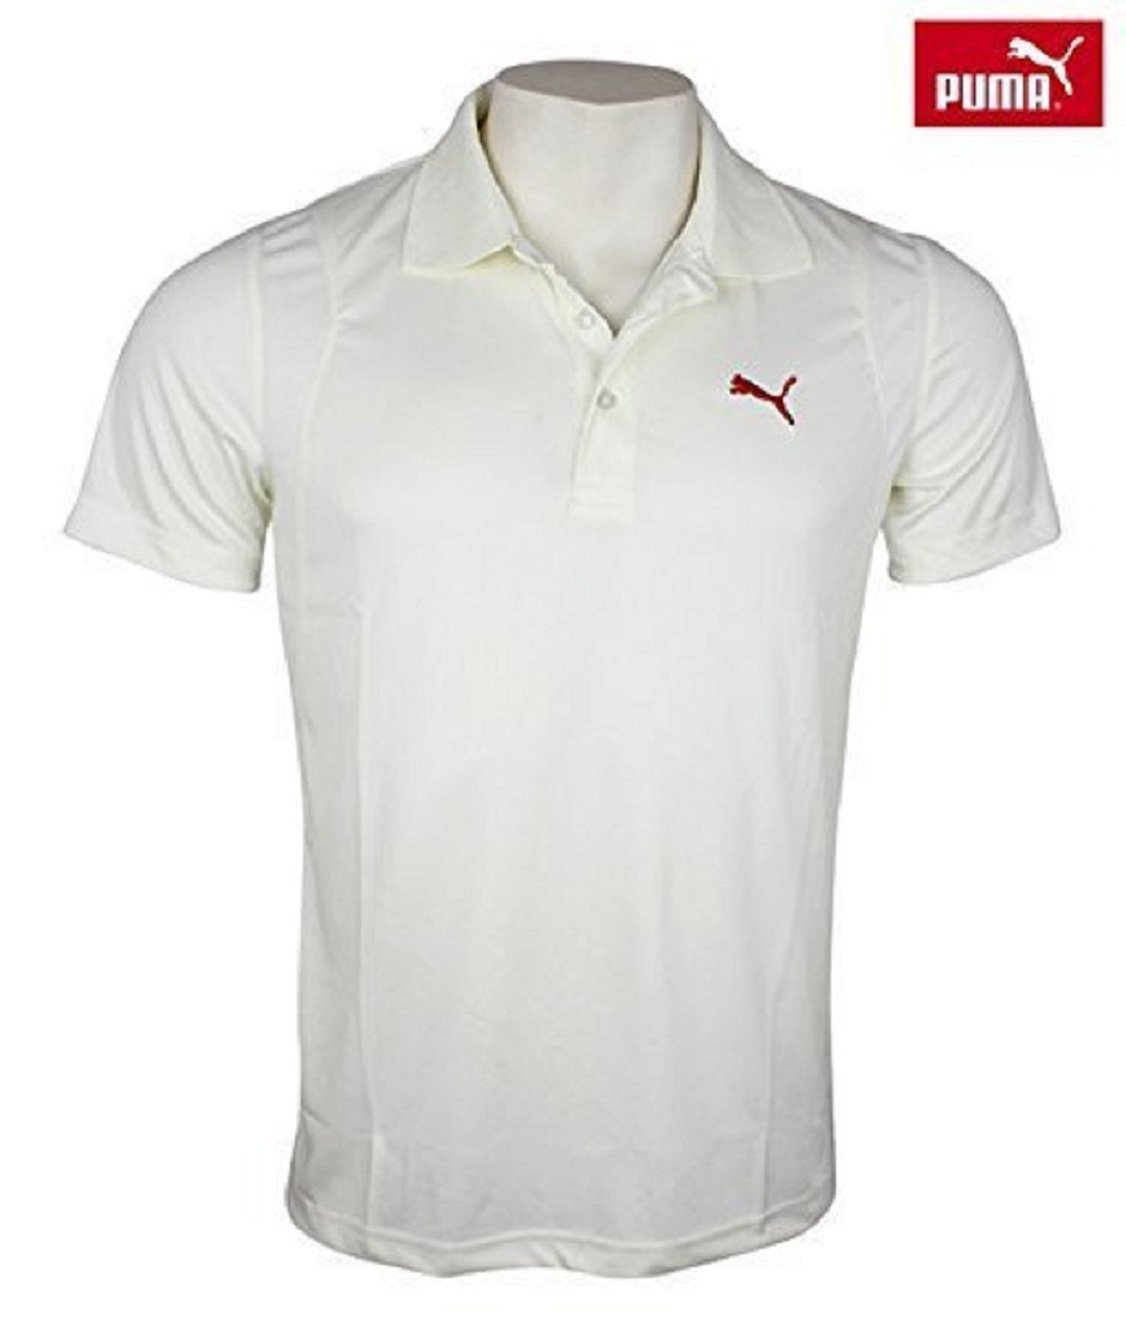 1cedbcec789a Puma Cricket T-Shirt Half Sleeve White Uniform Dryfit Dress Medium   Amazon.co.uk  Sports   Outdoors